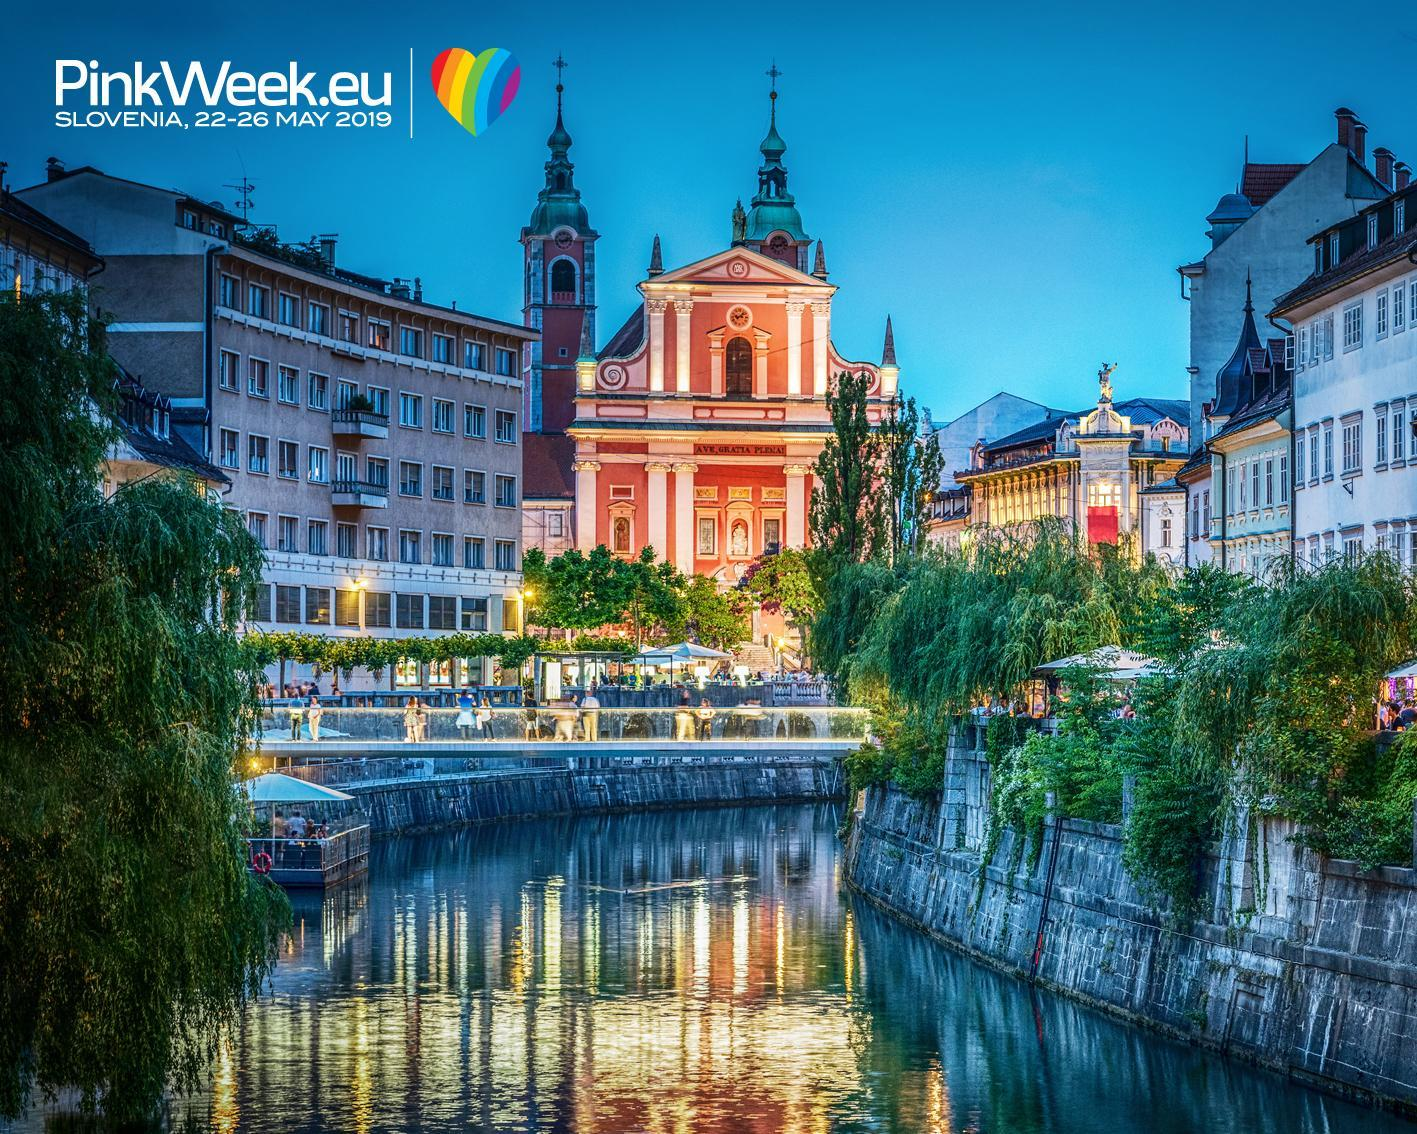 Pink Week 2019 weekend package: 2 nights hotel accommodation, daily breakfast, movie night, educational panel and Exclusive Dragon's Ball Dinner & Party